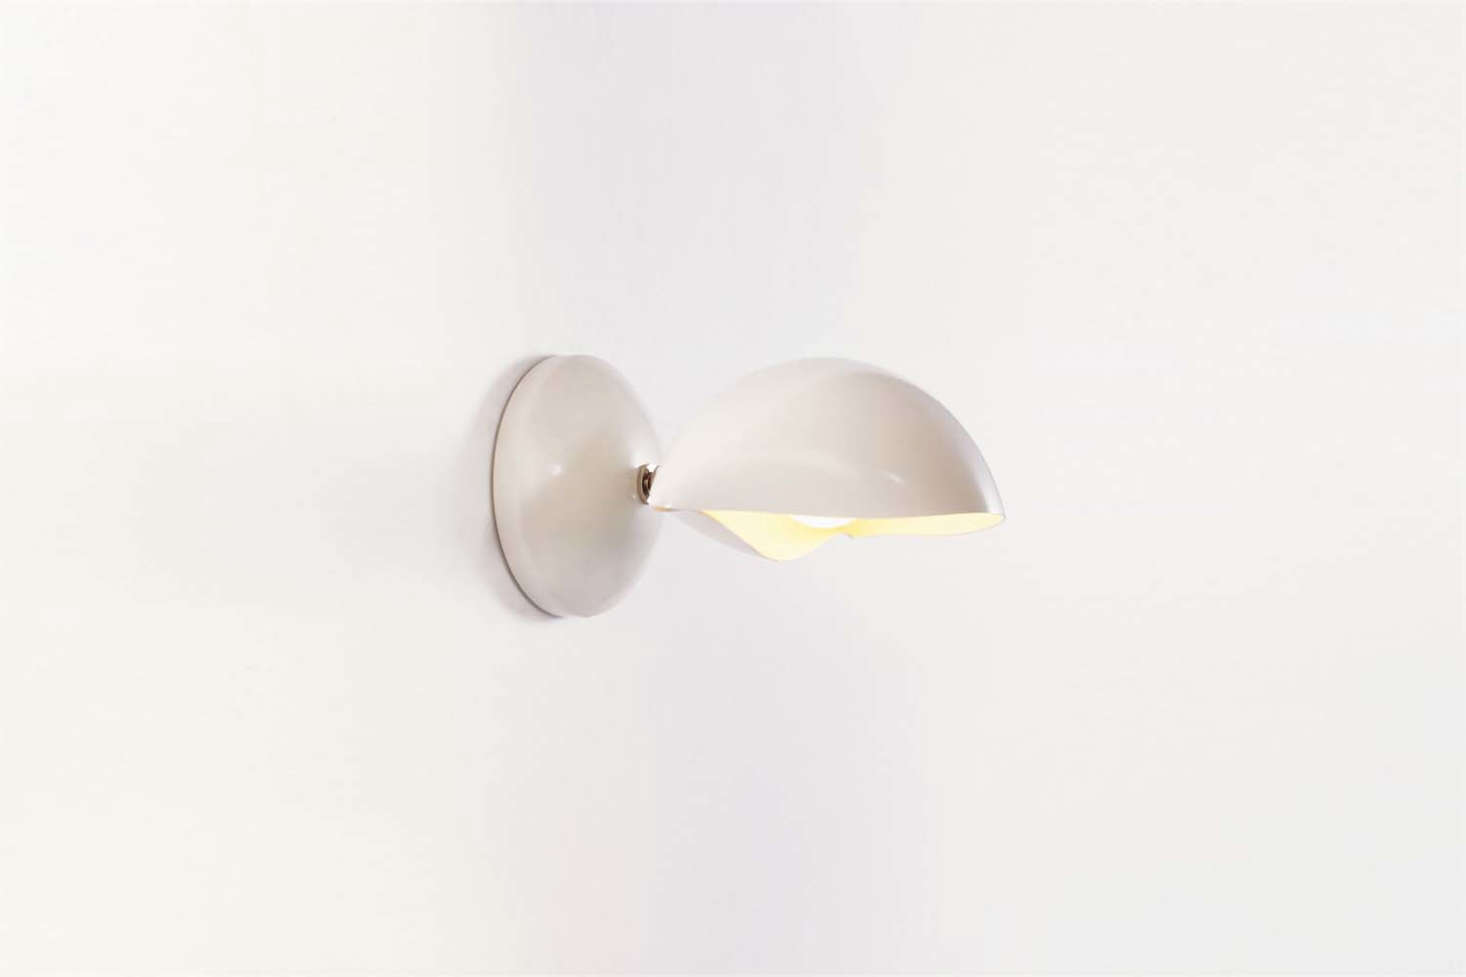 From Brooklyn-based David Weeks Studio, the classic Shell Sconce No. 6 comes in Black Satin, Grey Gloss, Ivory Satin (shown), and White Satin, with Polished Nickel or Brushed Brass hardware. Contact David Weeks Studio for ordering information.